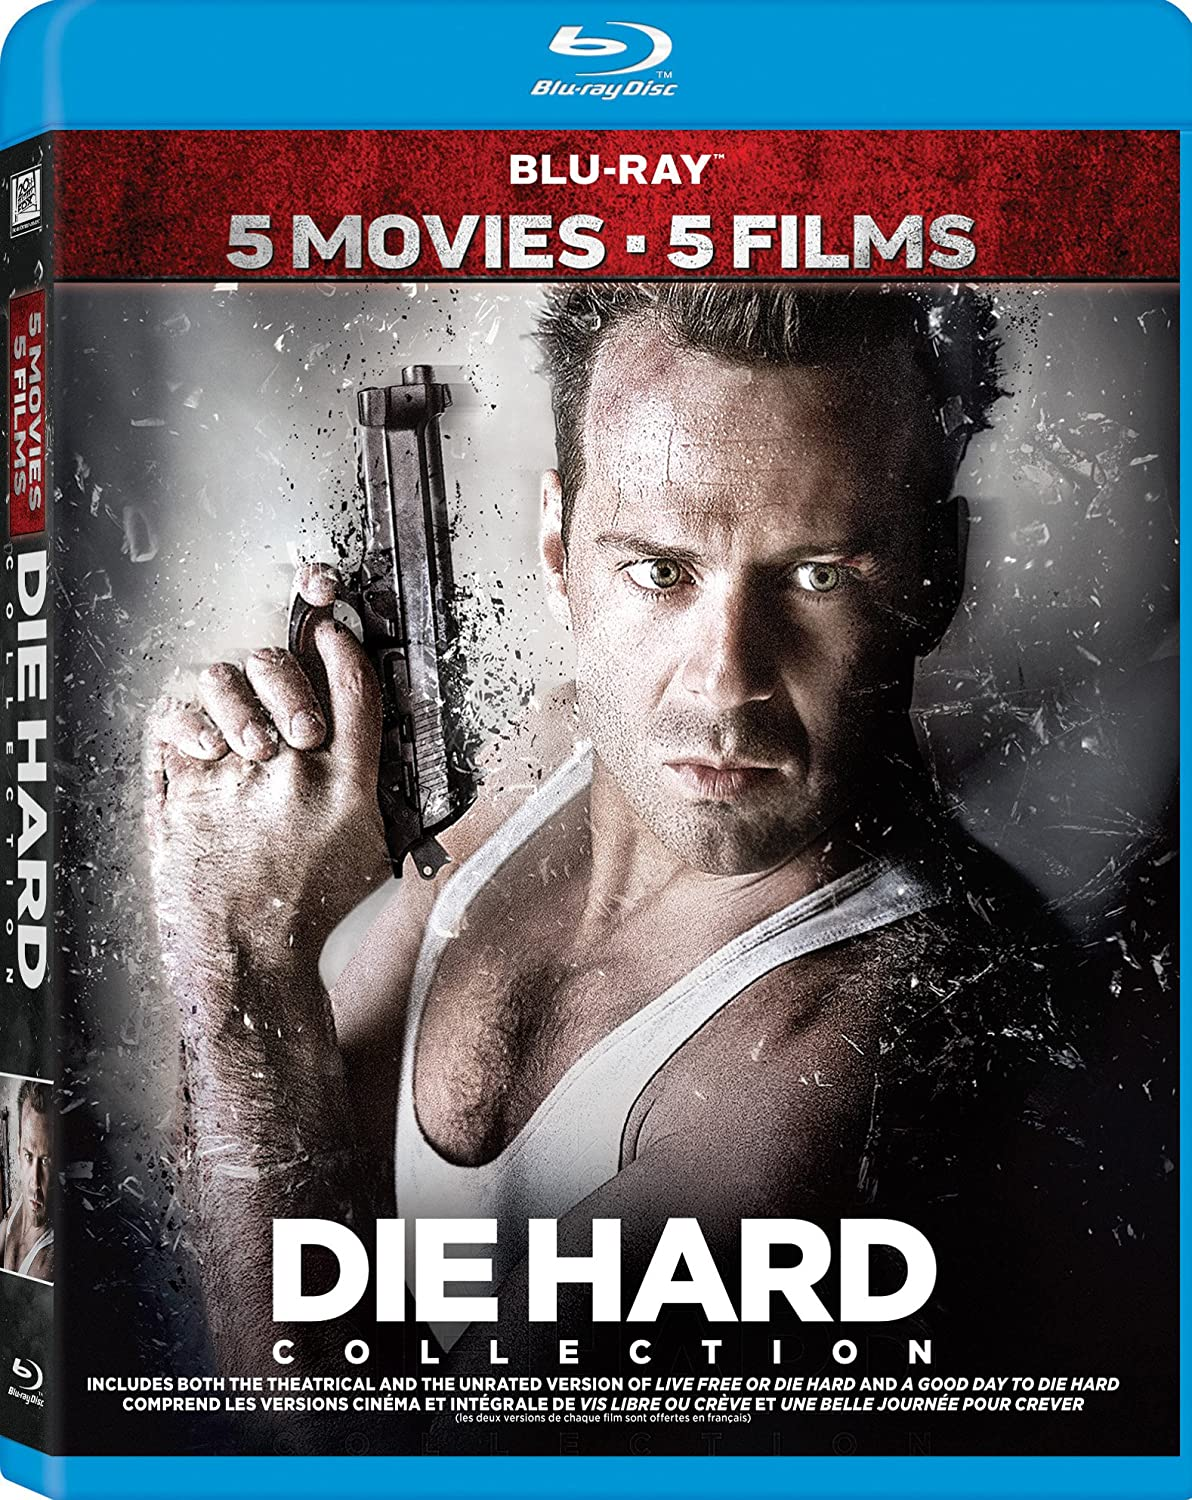 Die Hard Movie Collection (Bilingual) [Blu-ray] Bruce Willis Fox John McTiernan 20th Century Fox